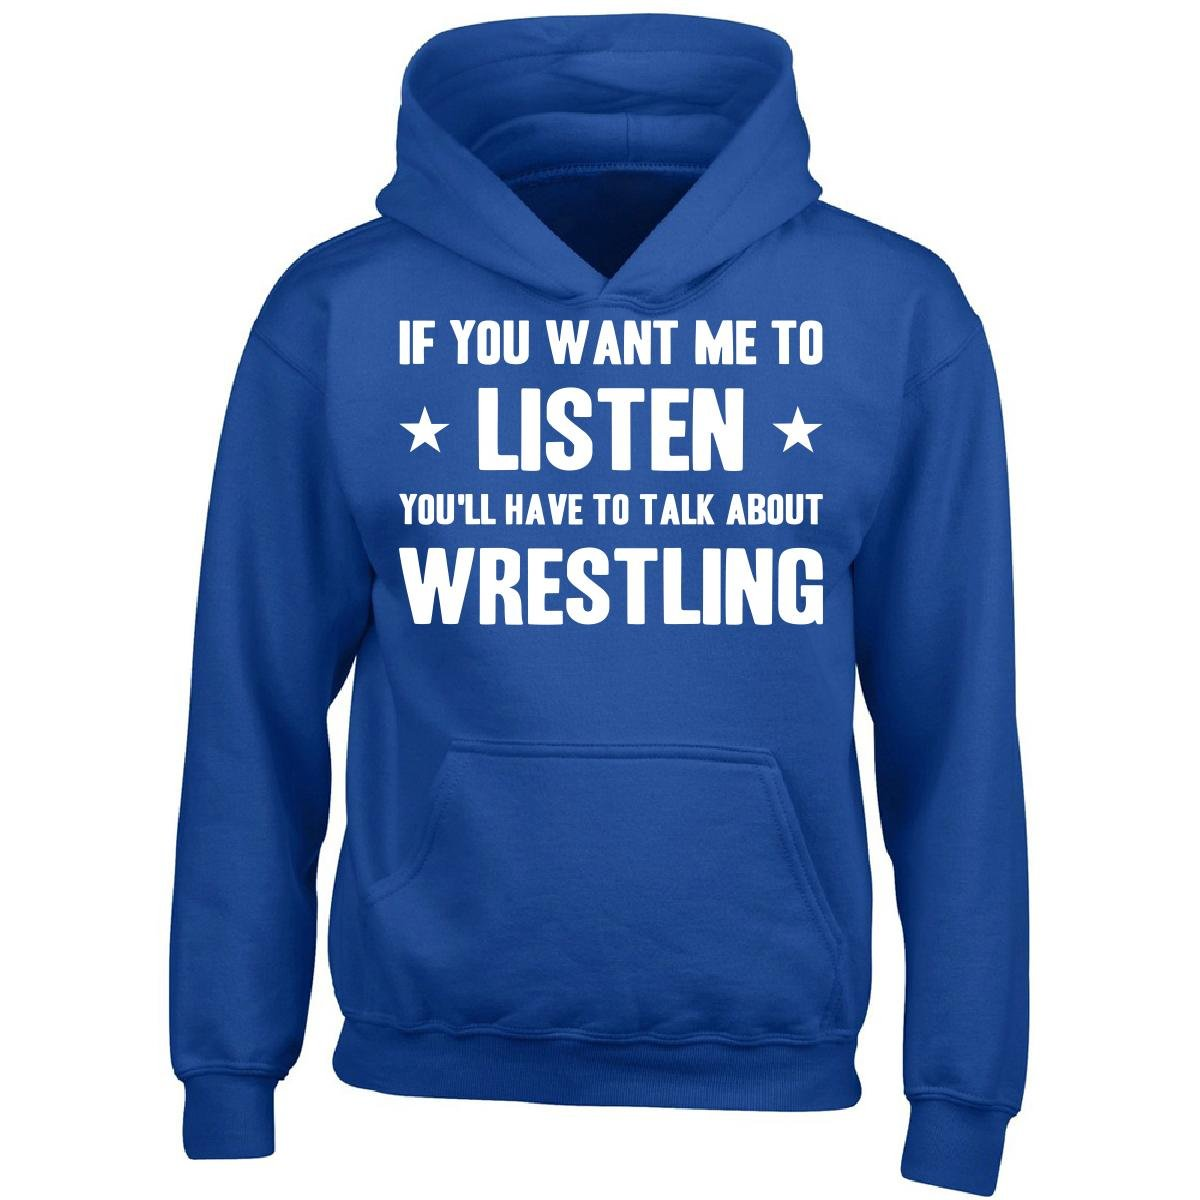 If You Want Me To Listen You'll Have To Talk About Wrestling - Boy Boys Hoodie